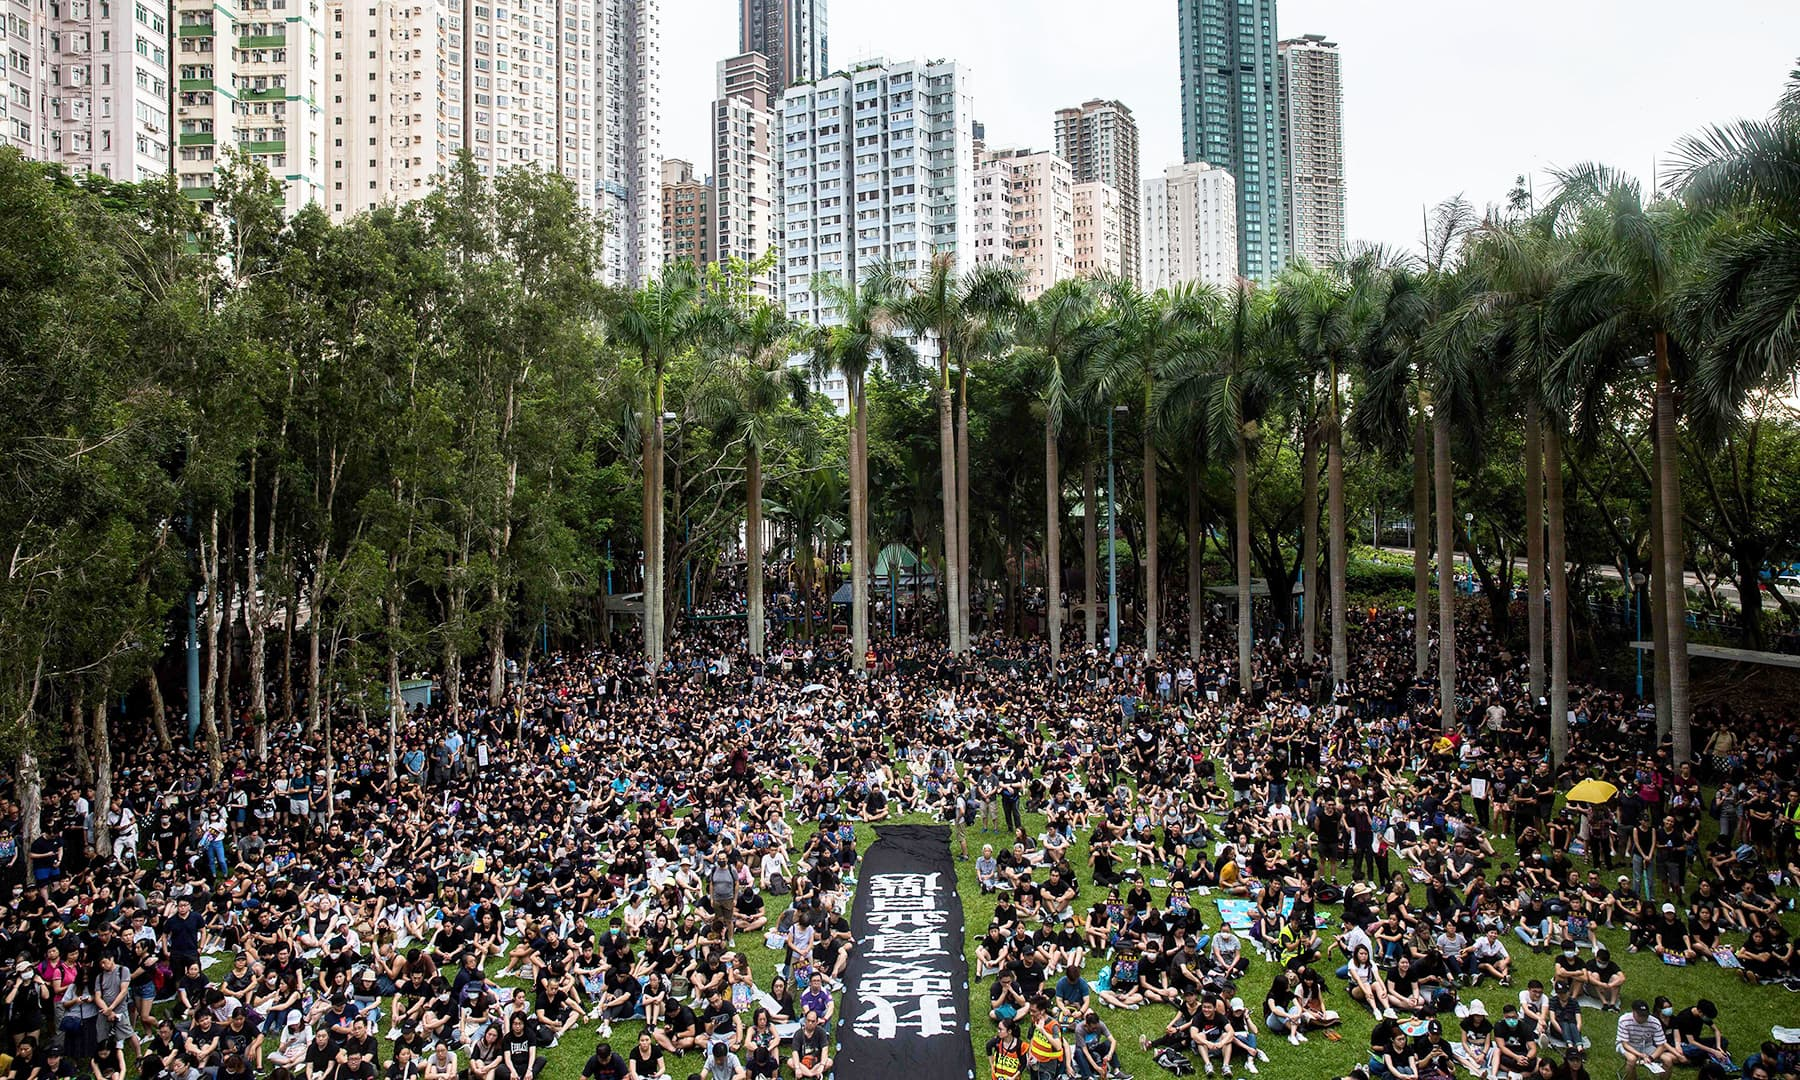 People attend a protest in the Western district of Hong Kong on Sunday. — AFP